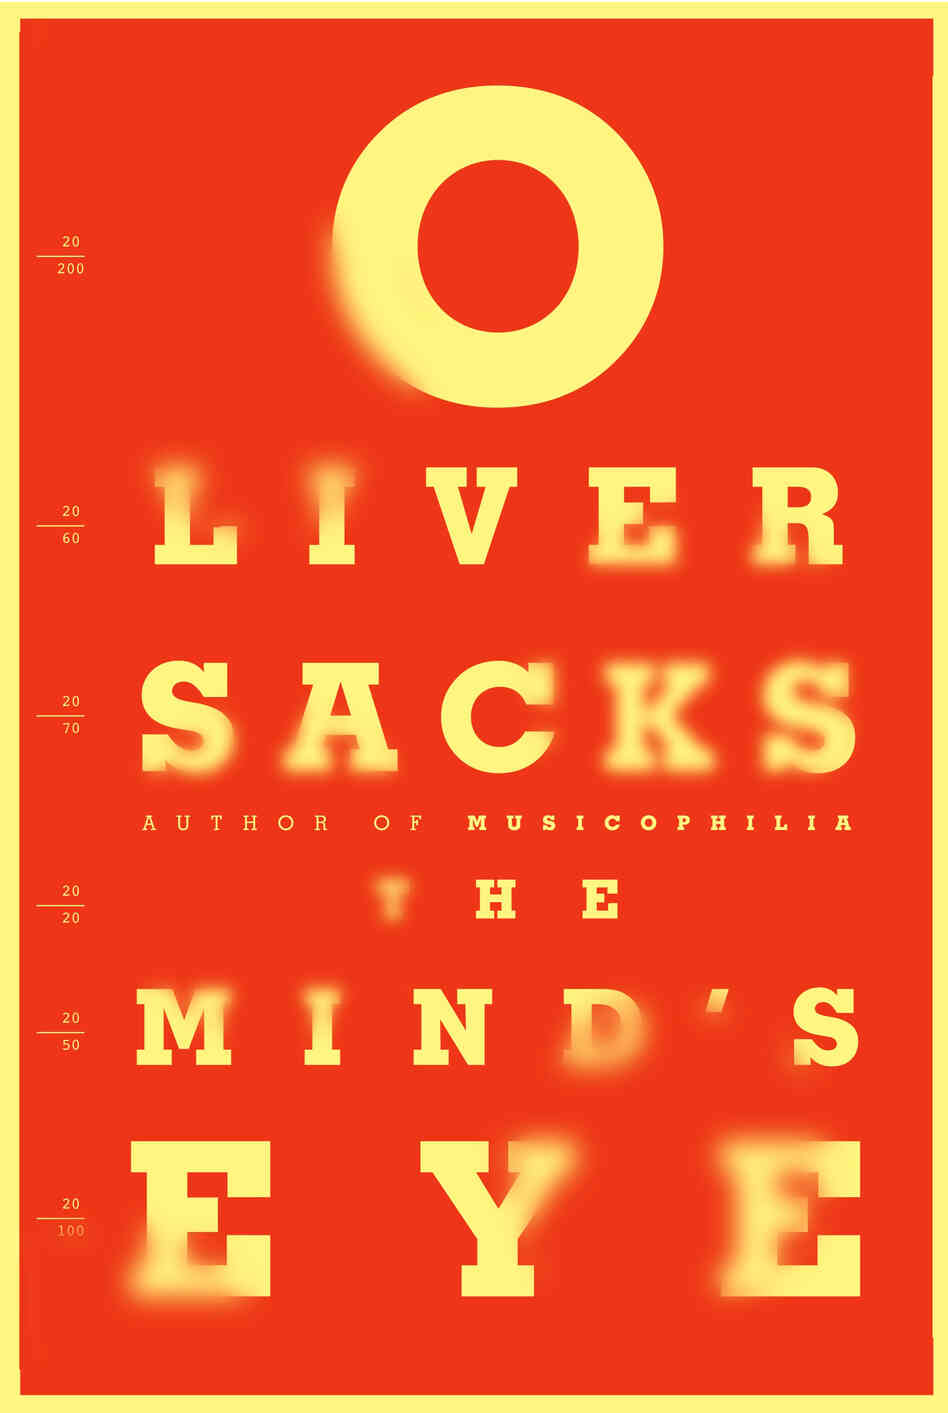 "The Mind's Eye by Oliver Sacks: ""This book by the renown neuro-scientist is about how eyesight works in the brain and how it doesn't. When the author goes to the optometrist for a checkup and the eye chart starts doing strange things, he knows there is a problem. It spurs him on to research the miraculous phenomena of how we see."""